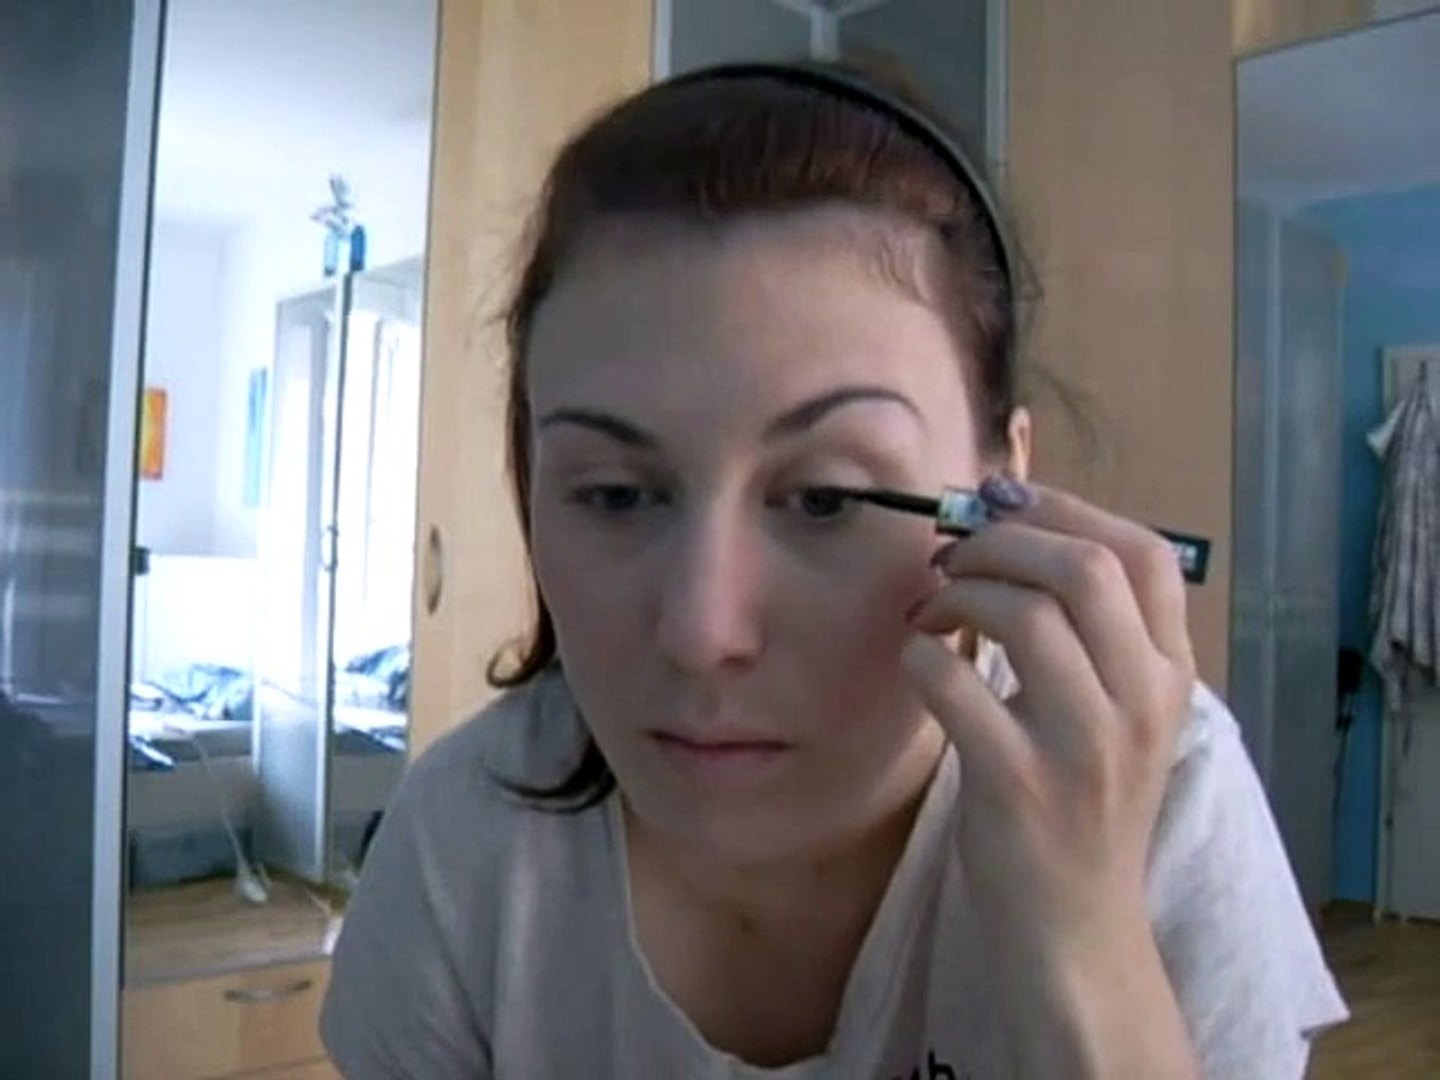 Daily Make Up Routine Gettin' Ready part 3